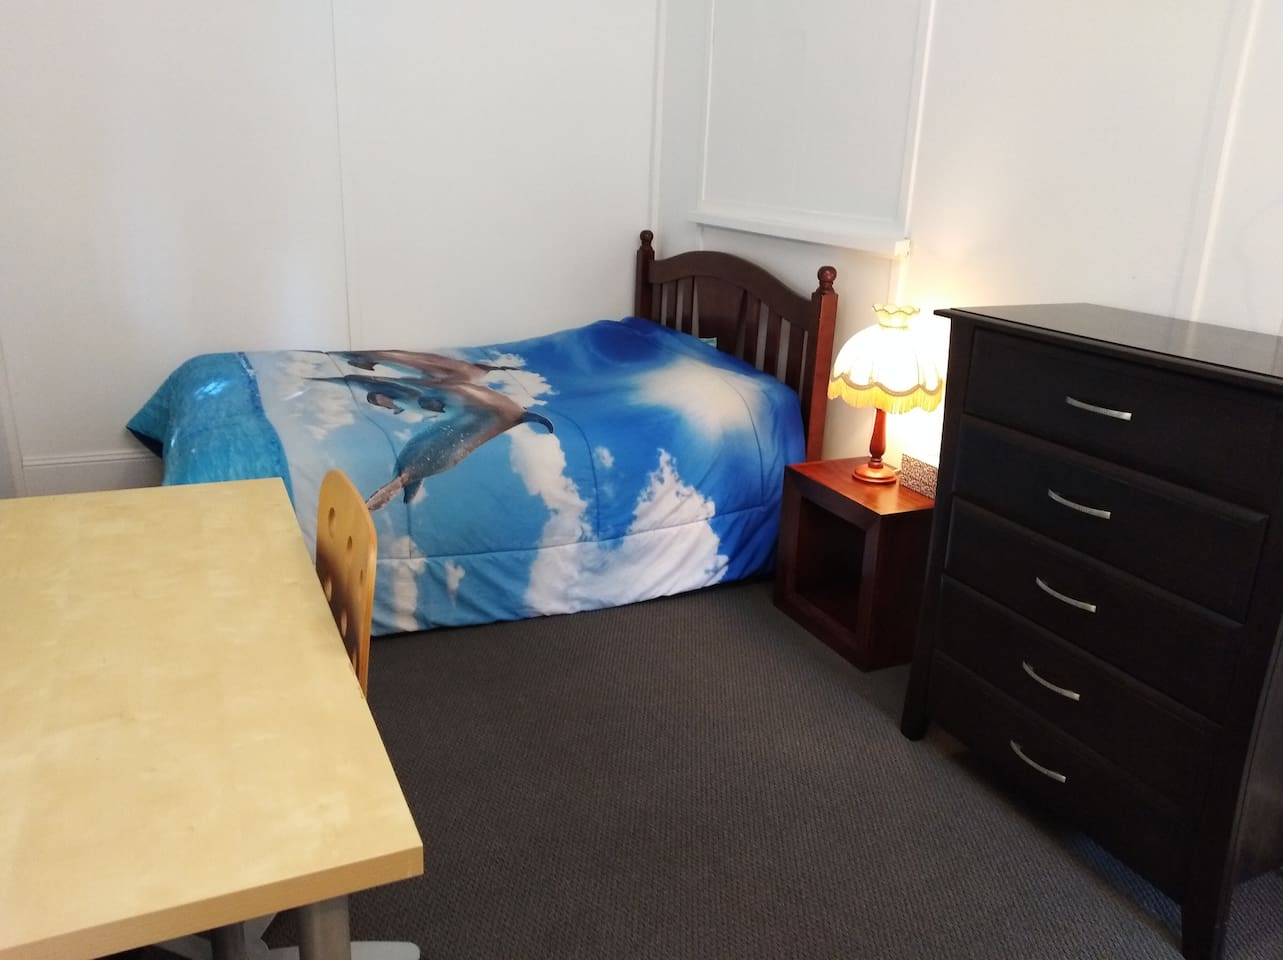 Double bed, drawers, desk, bedside, WiFi